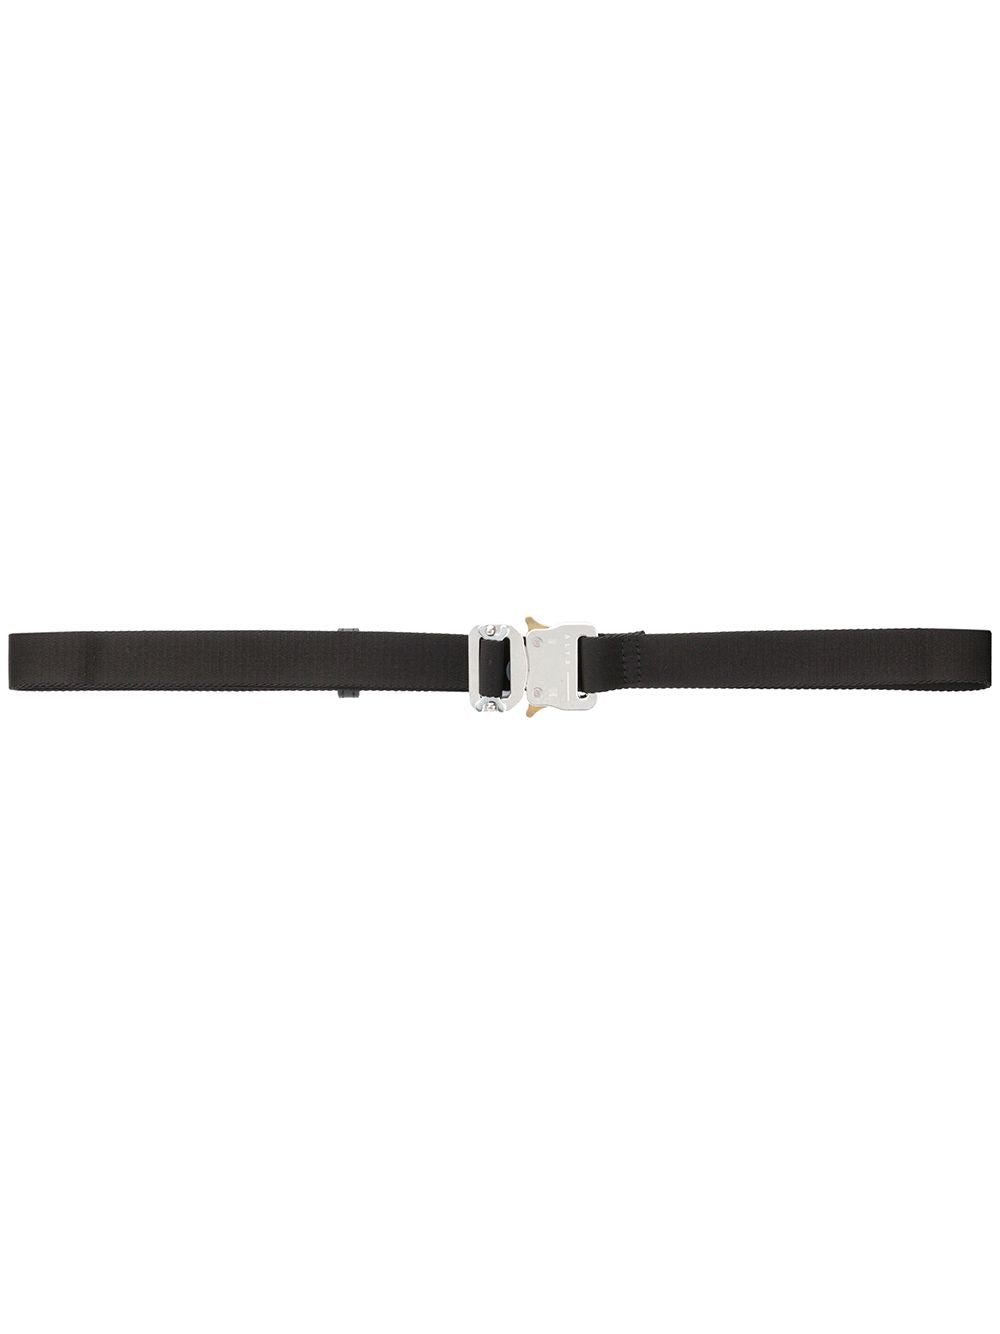 1017 ALYX 9SM MEDIUM ROLLERCOASTER BELT